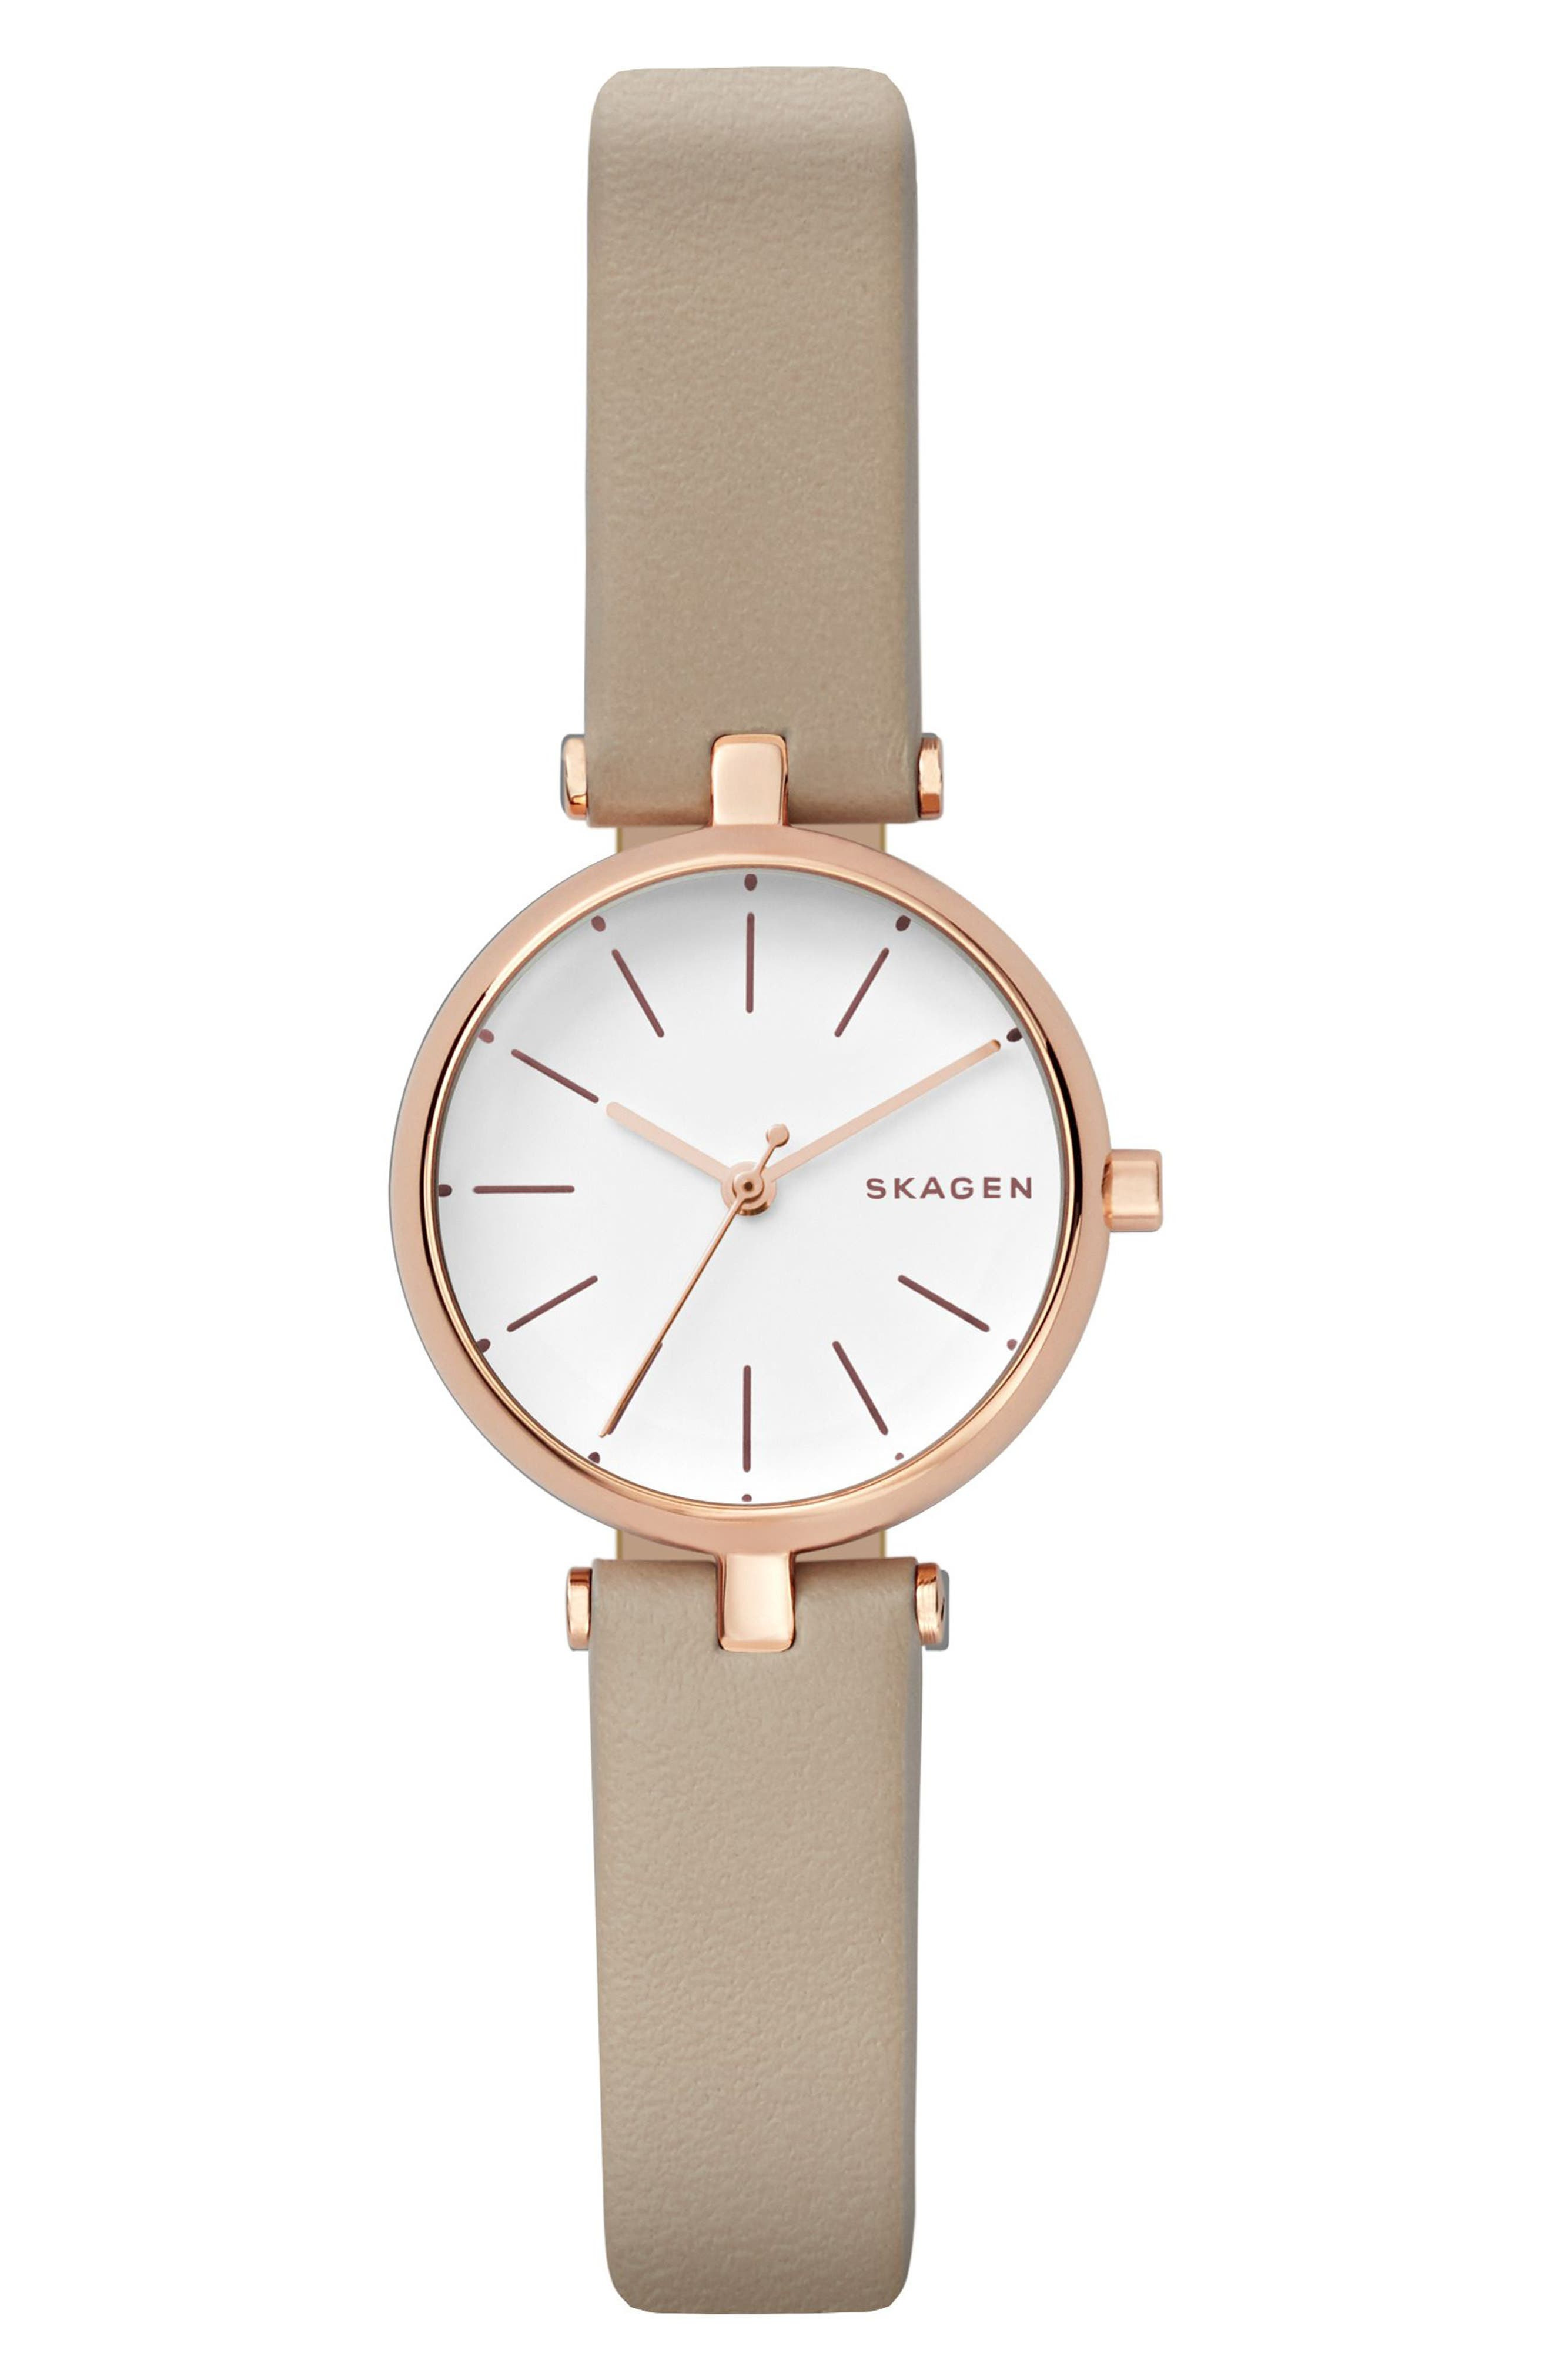 Signatur Leather Strap Watch, 26mm,                         Main,                         color, Nude/ White/ Rose Gold